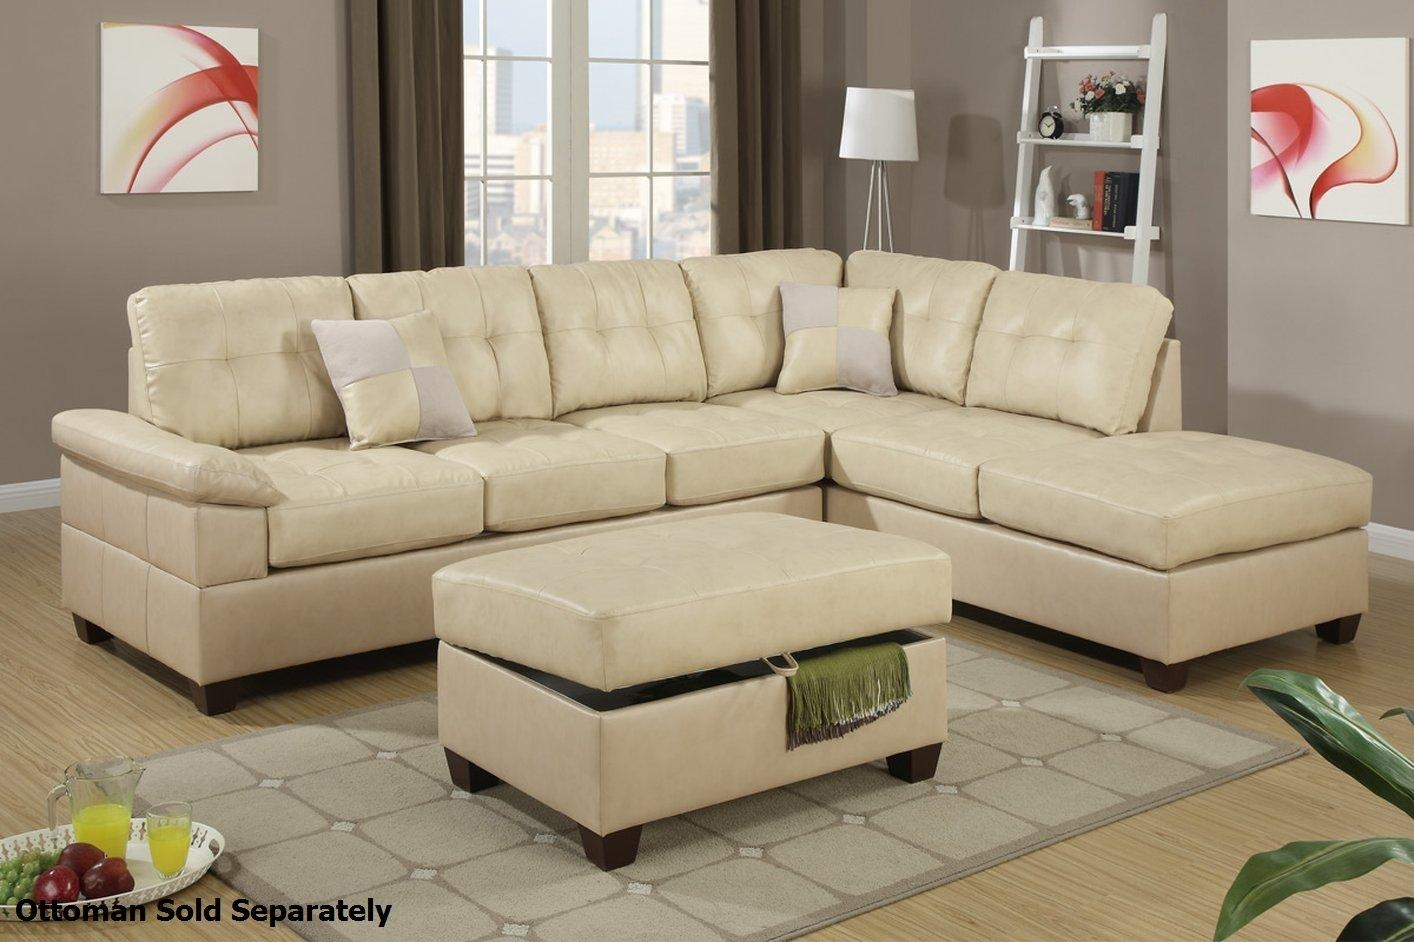 Beige Leather Sofas Pertaining To Beige Leather Couches (View 5 of 20)